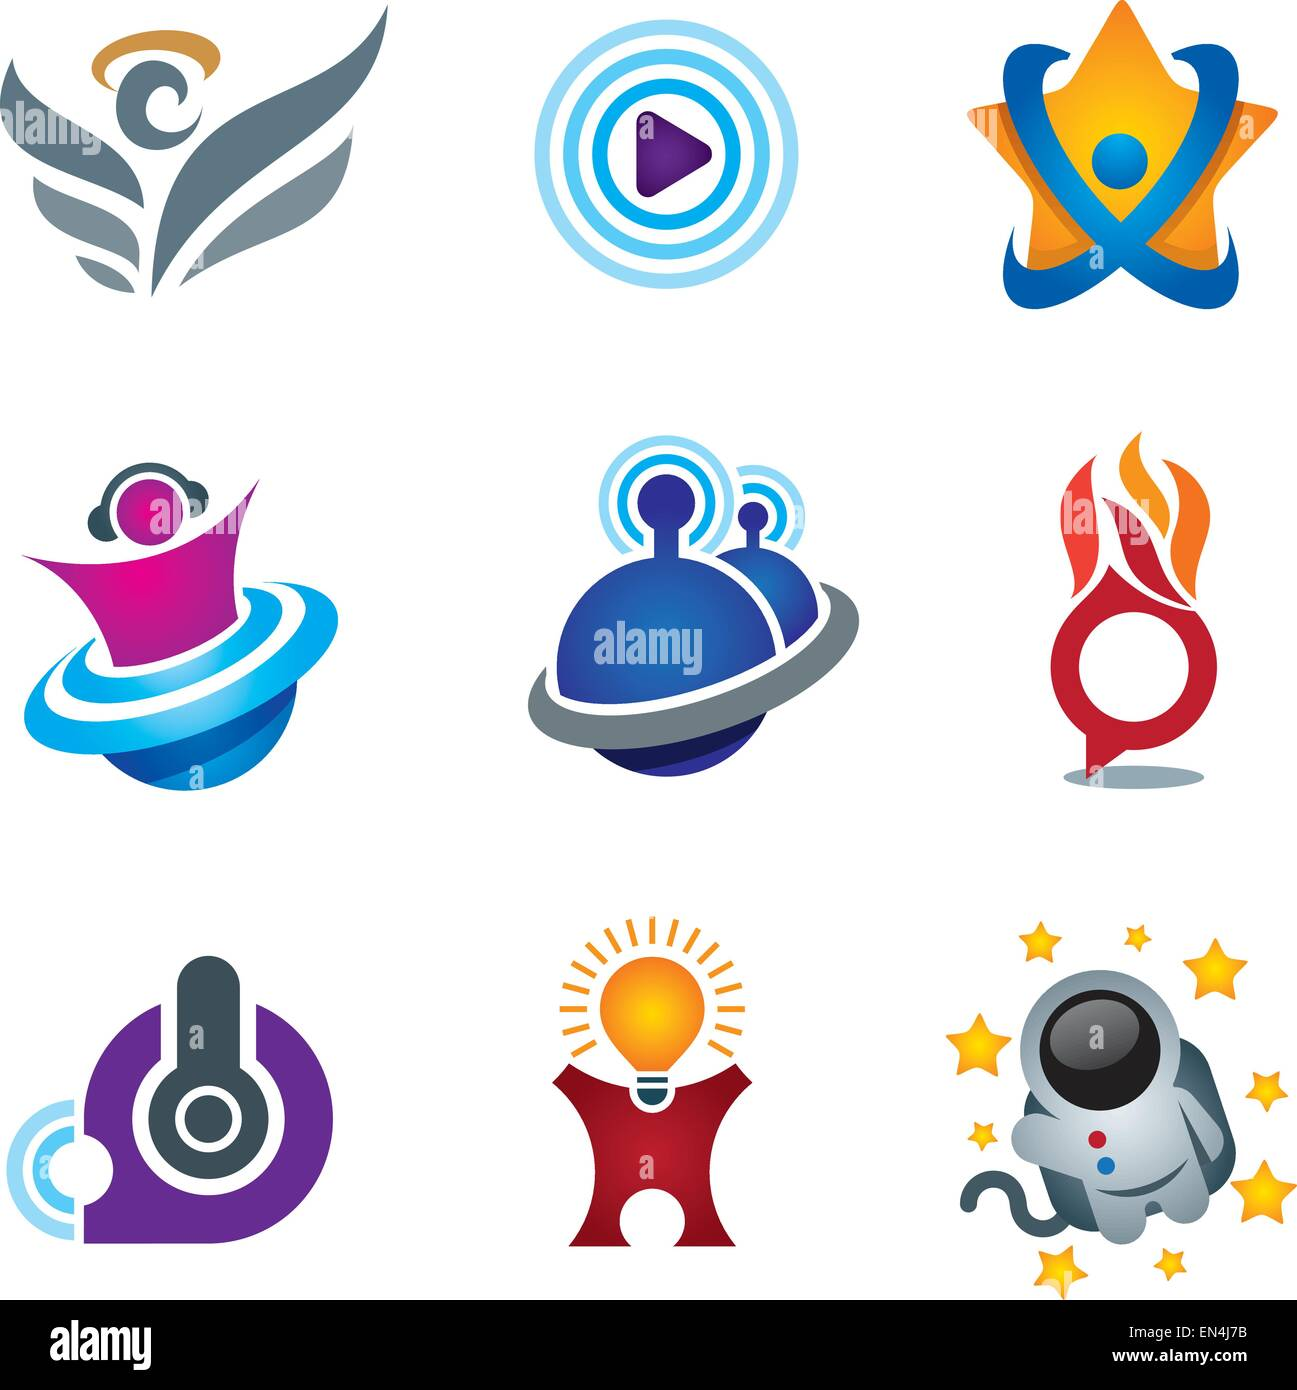 Entertainment And Fun Symbol Of Exploring Happiness Study Logo For